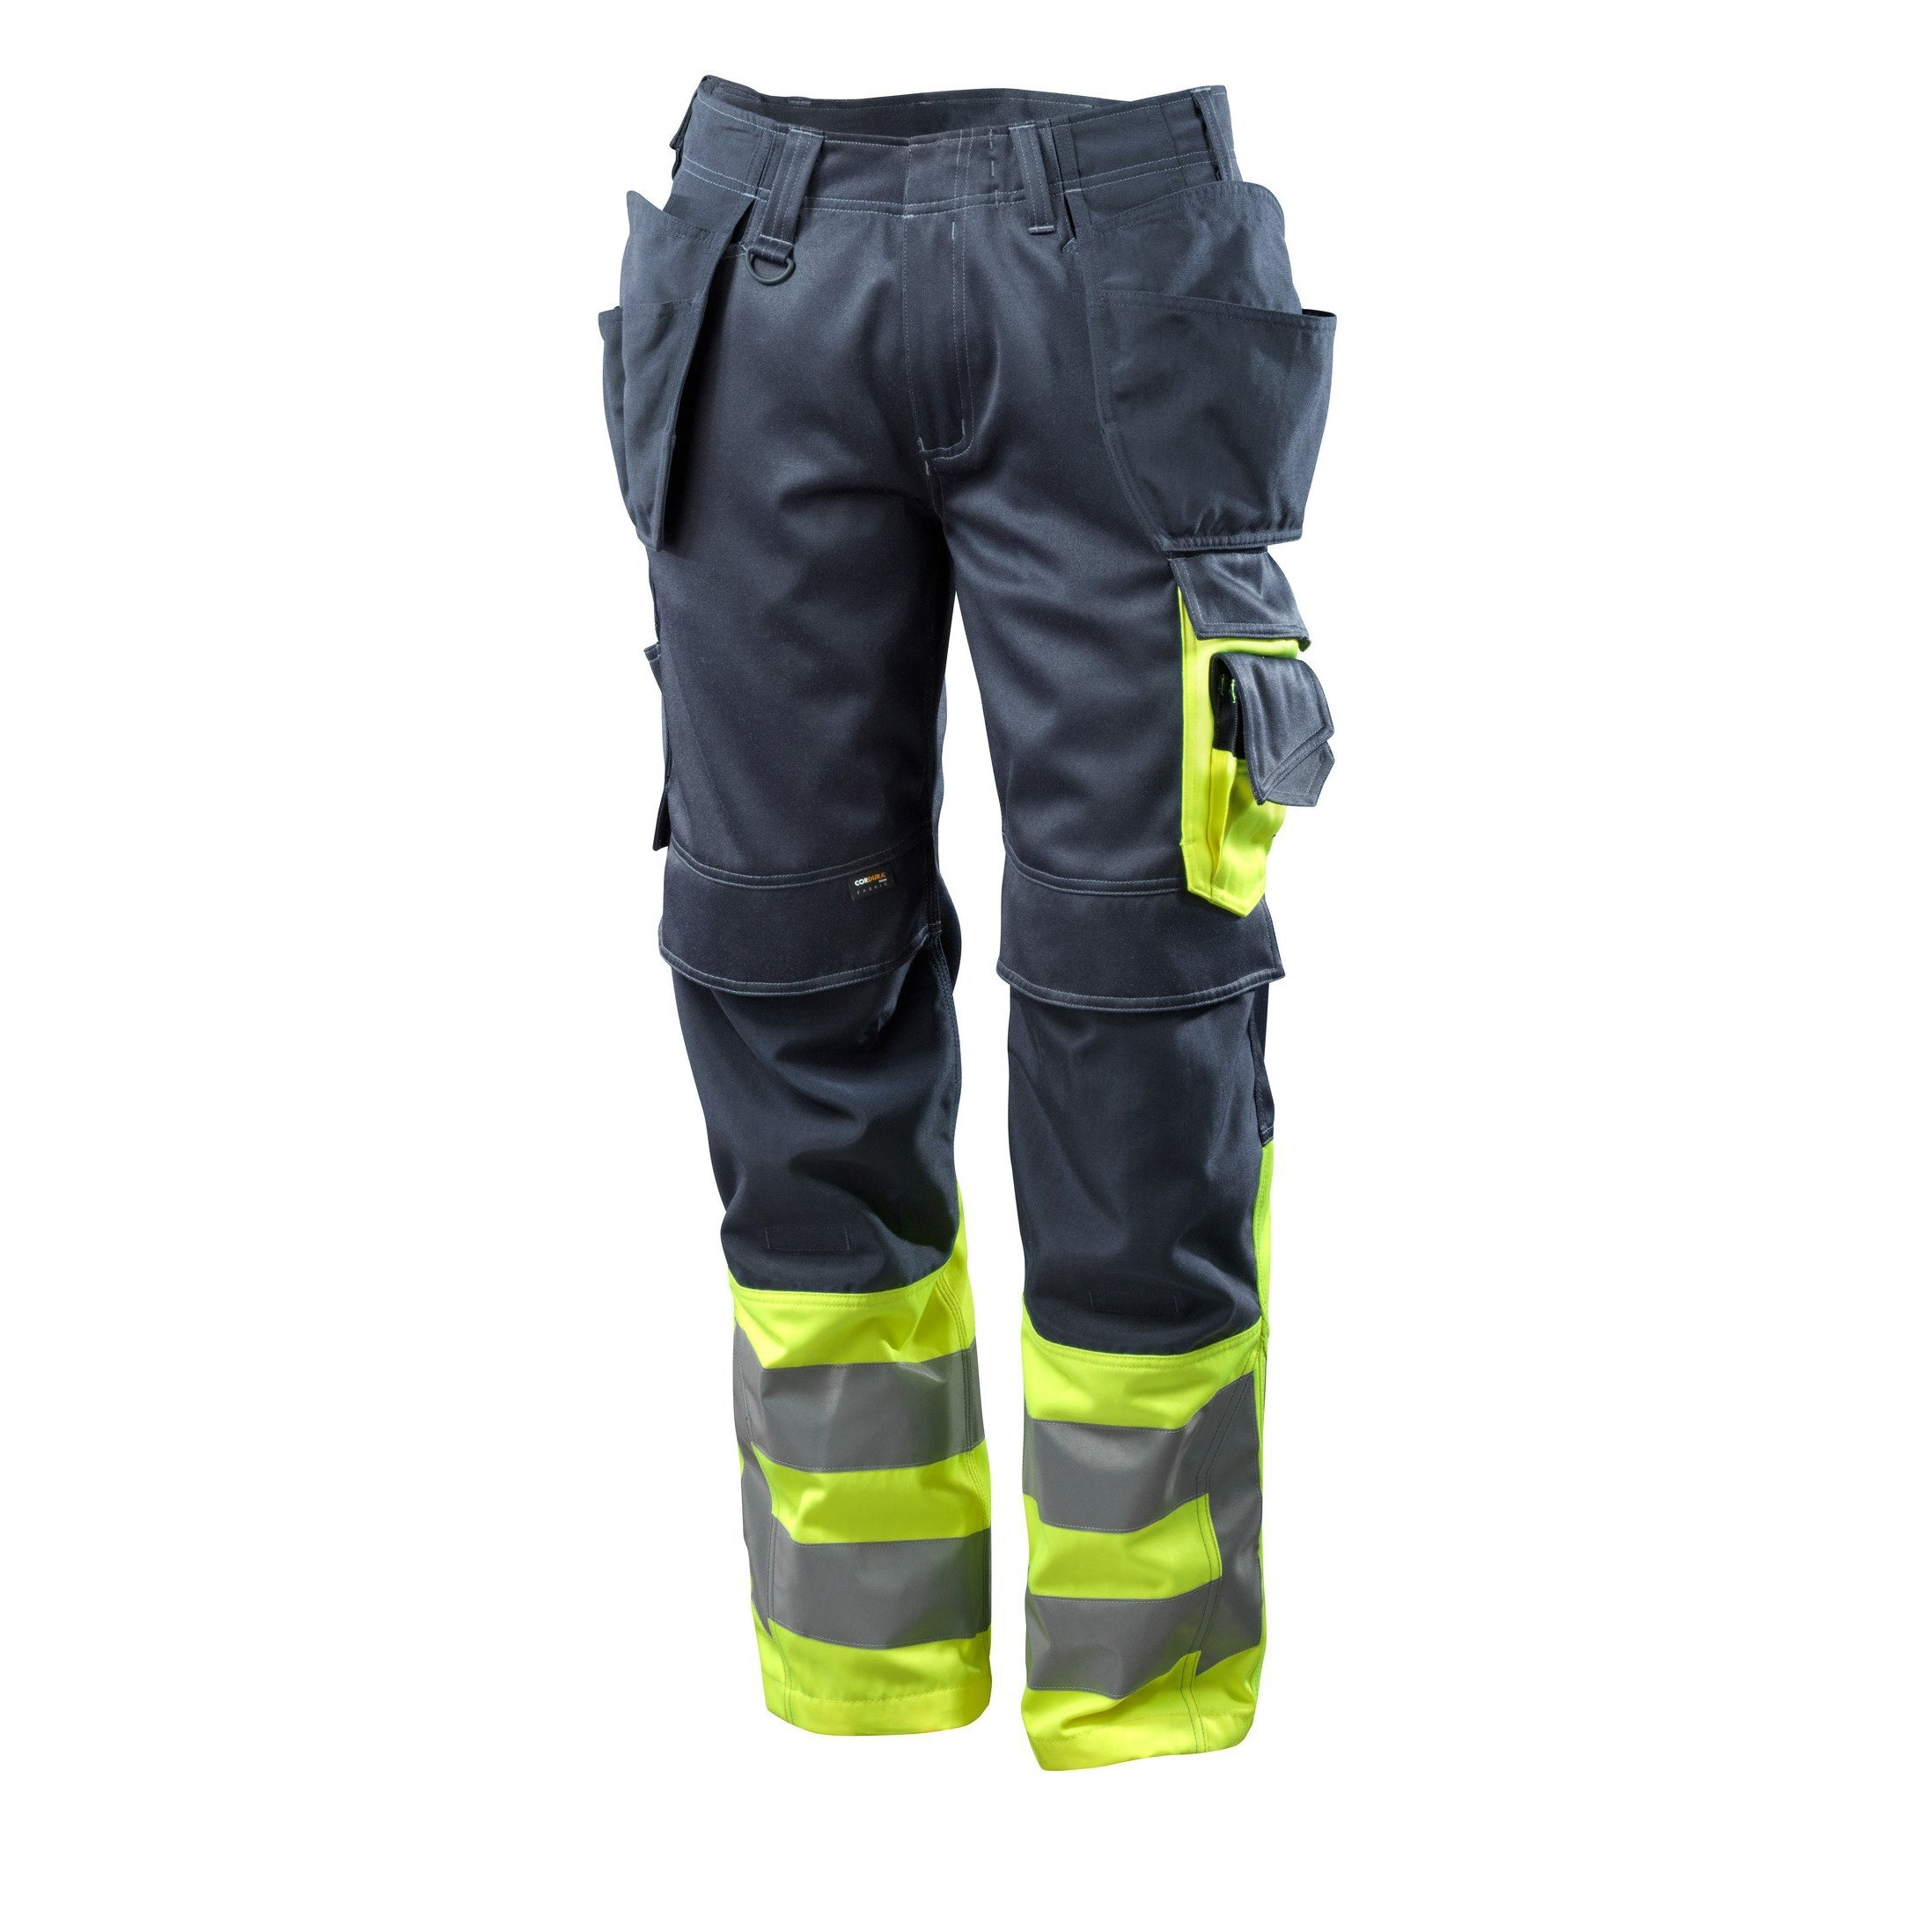 Mascot Safe Supreme Trousers With Kneepad Pockets And Holster Pockets